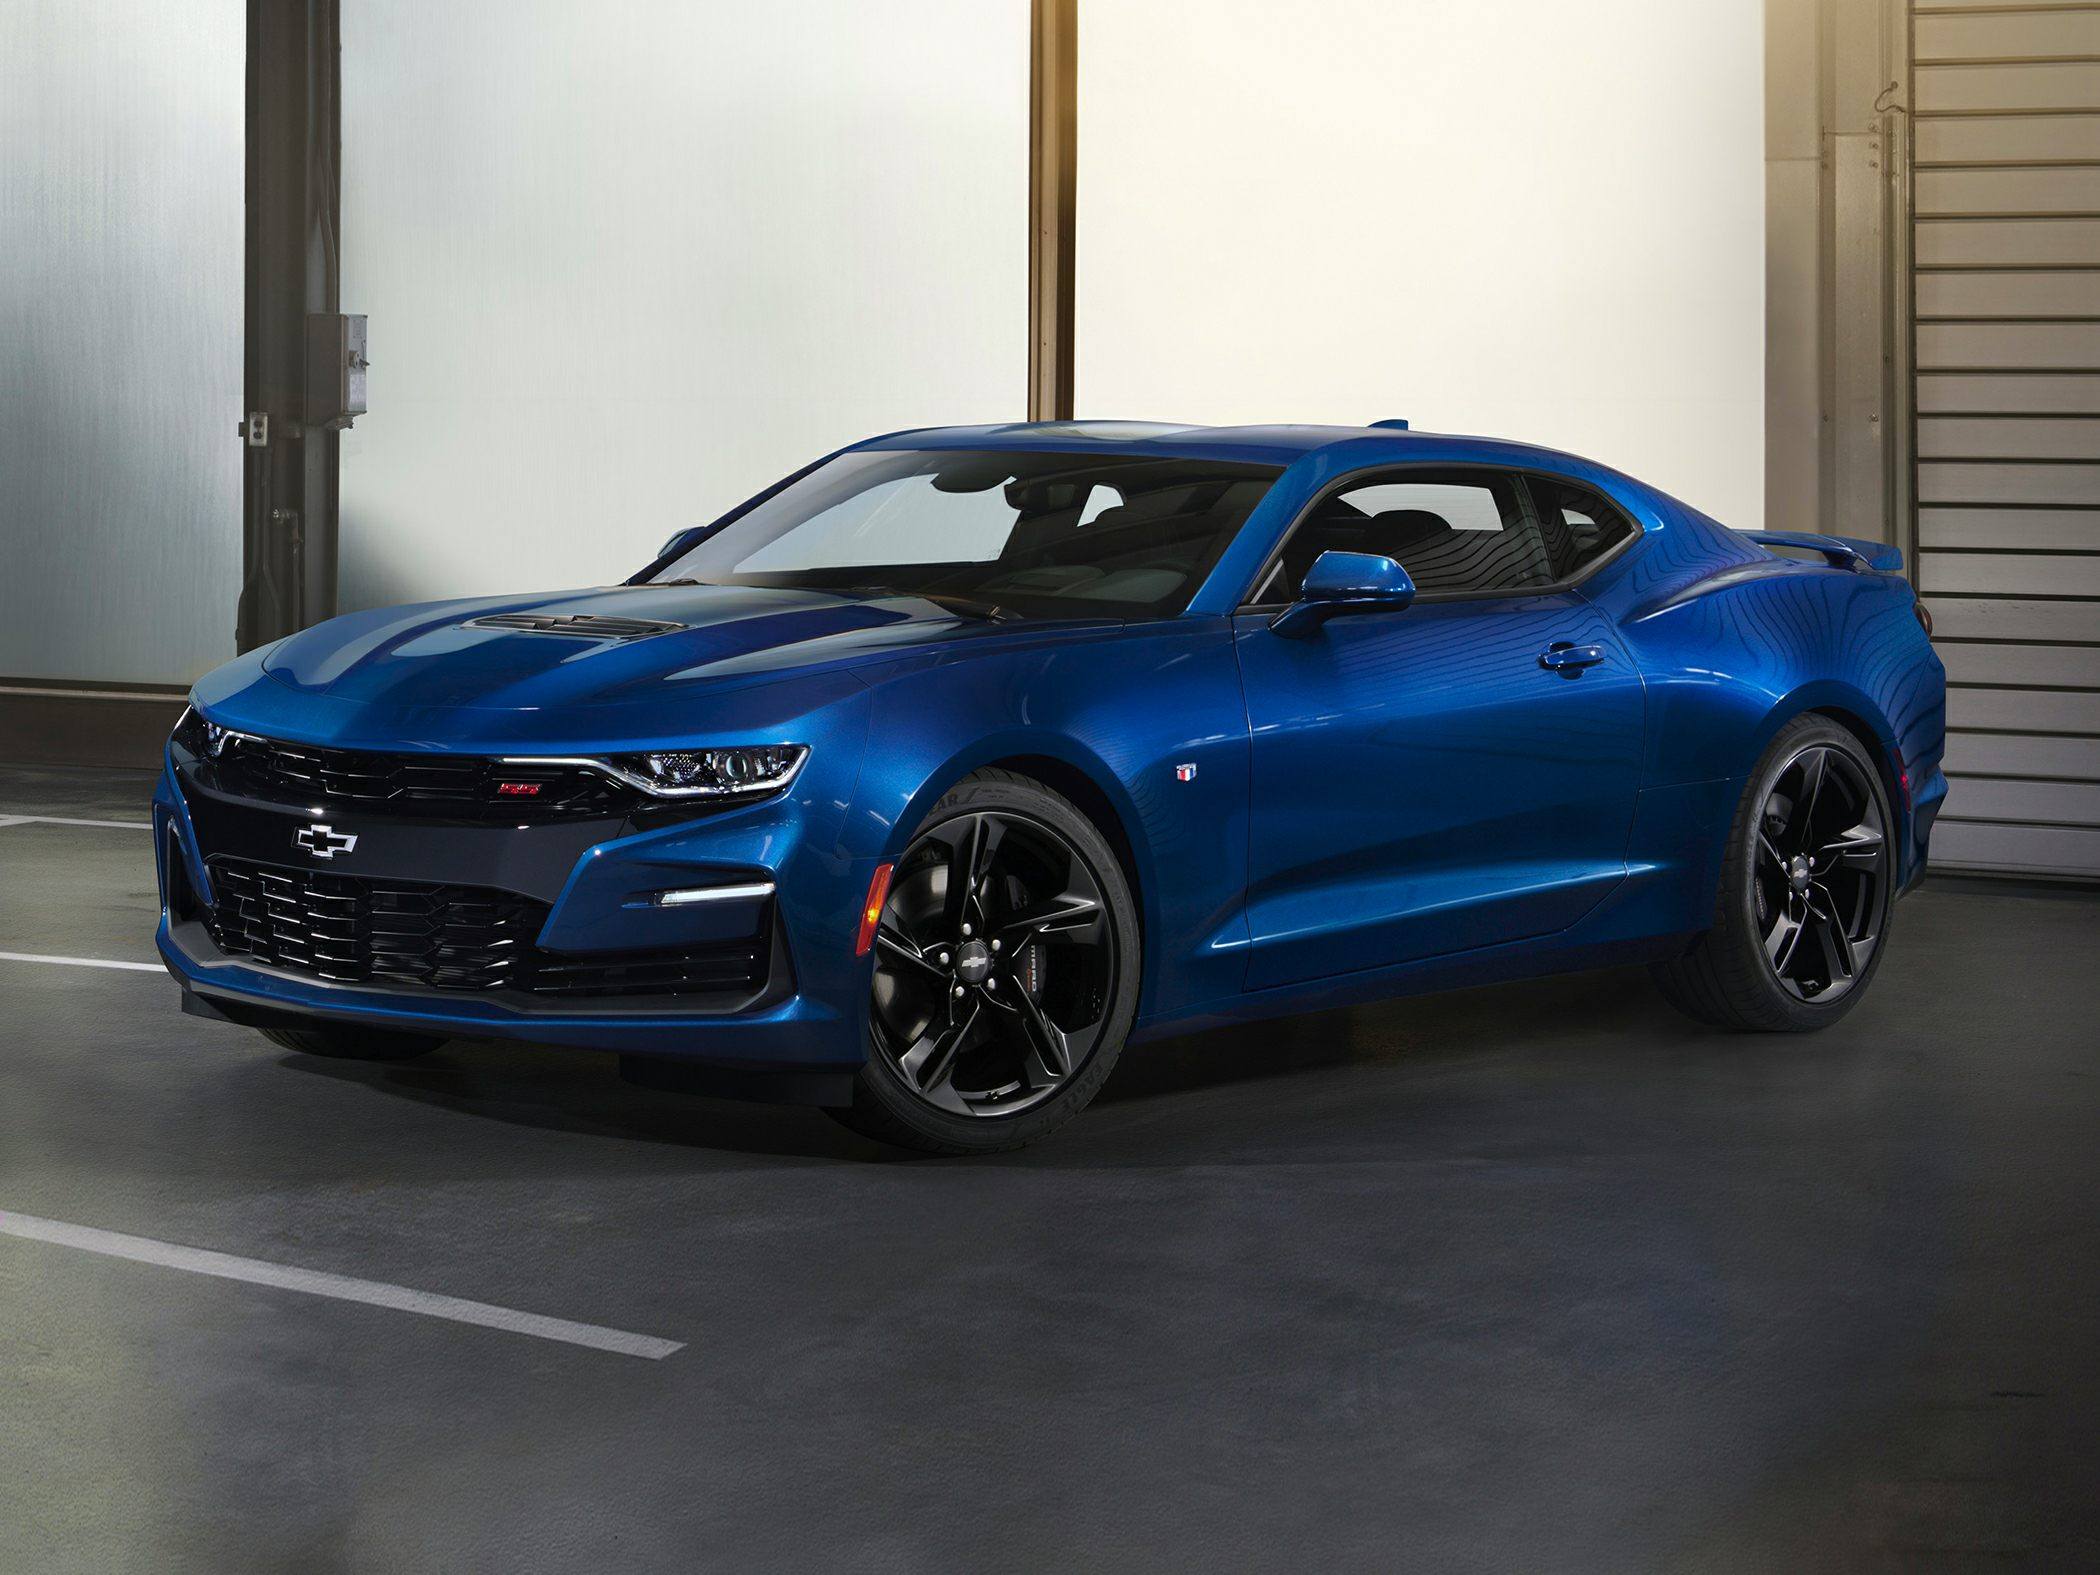 2019 Chevrolet Camaro Deals Prices Incentives Leases Overview